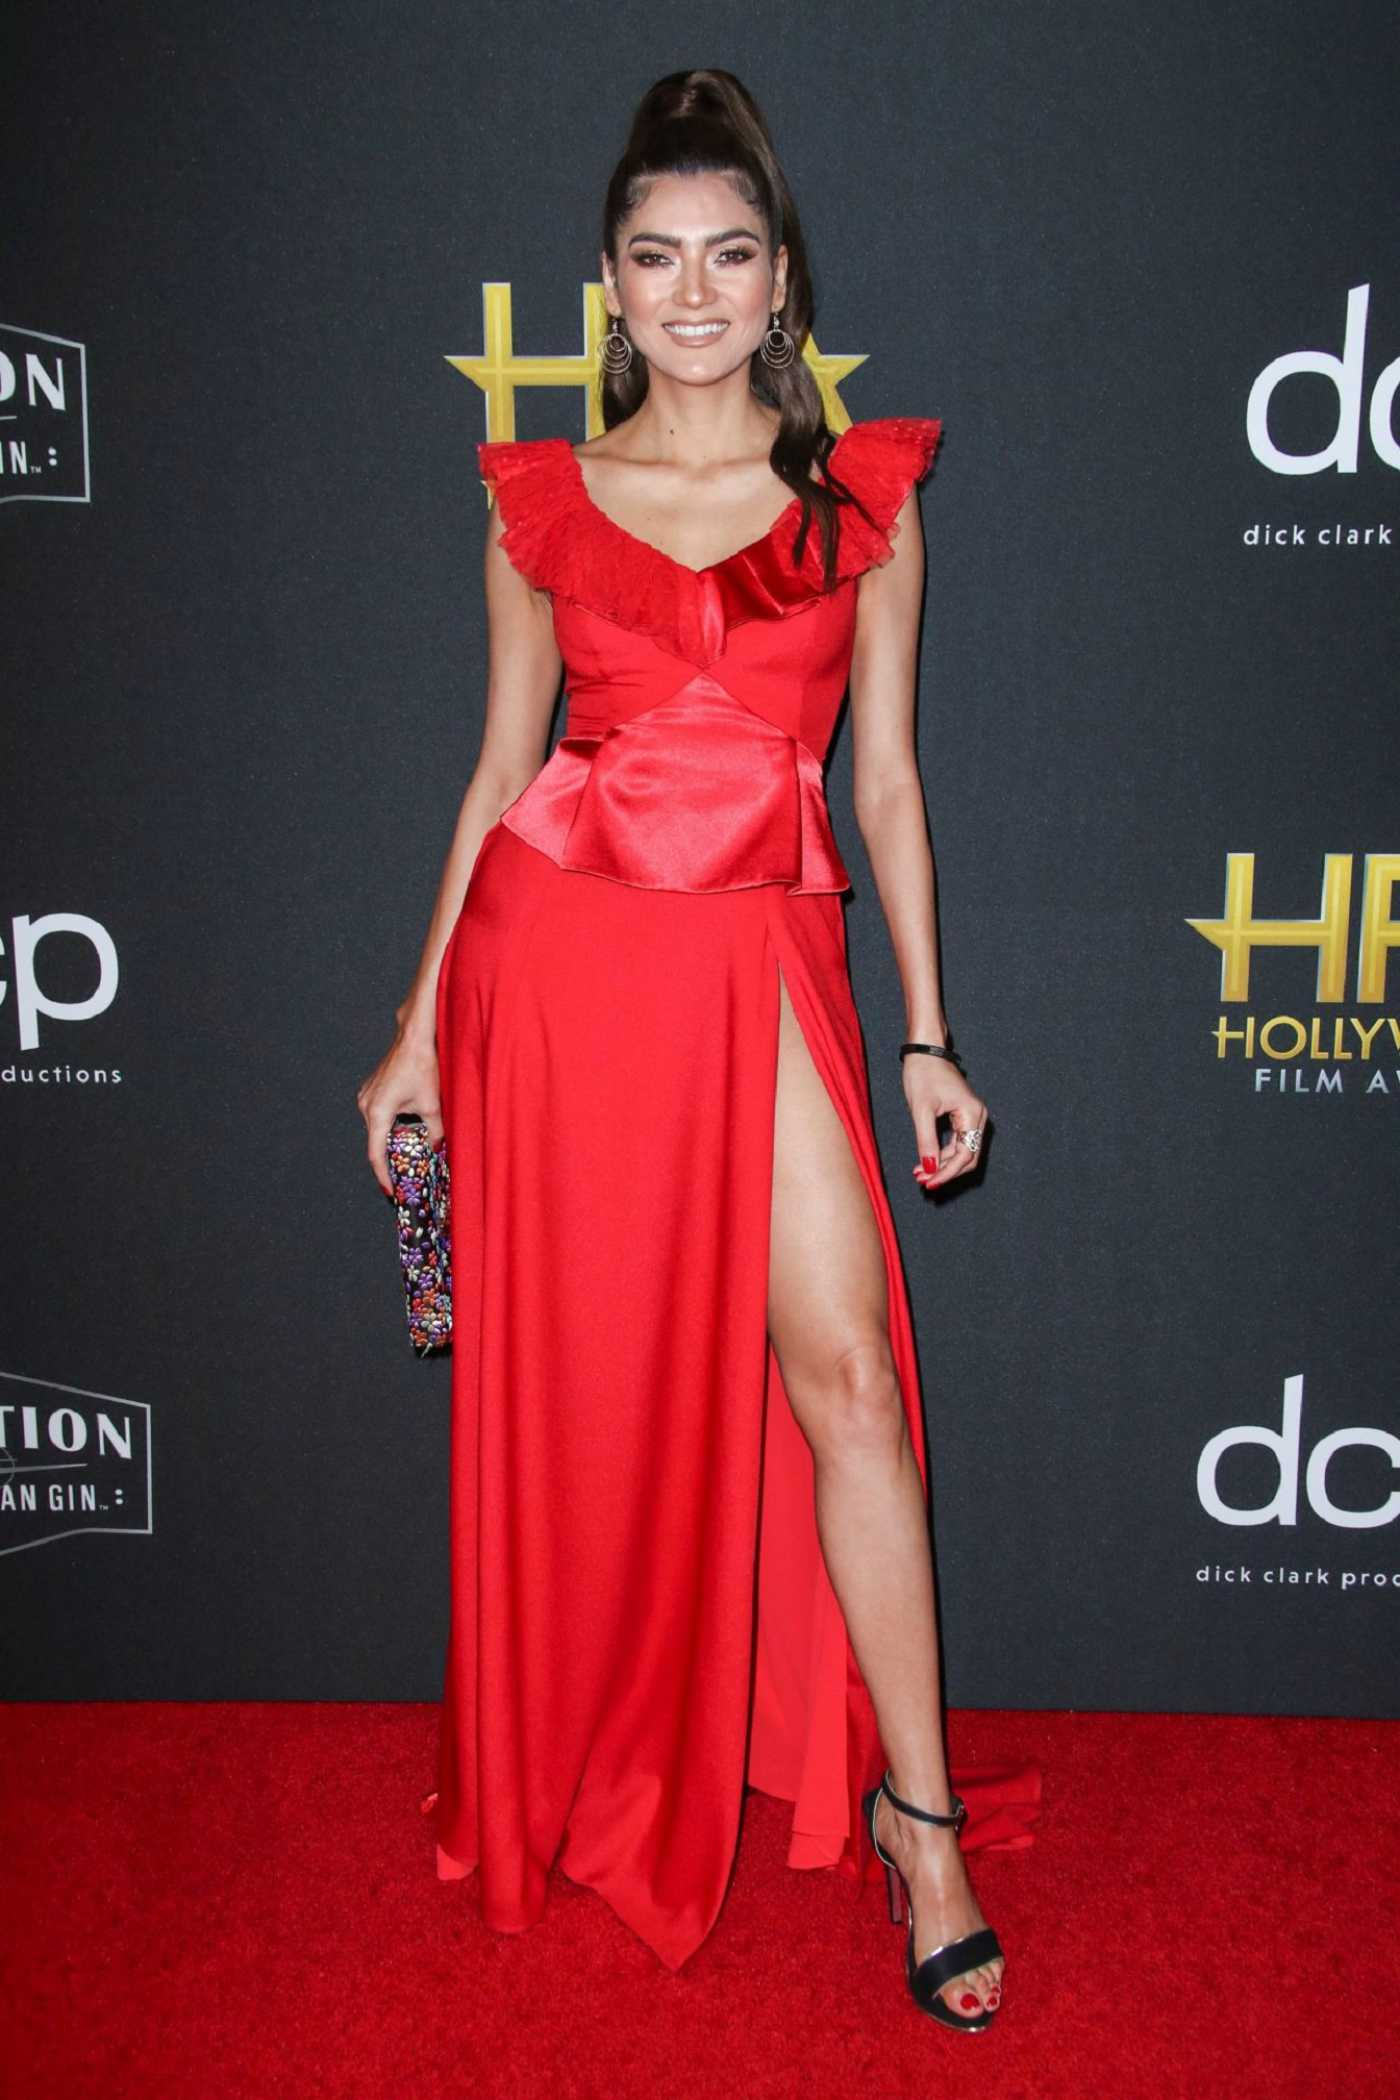 Blanca Blanco Attends the 23rd Annual Hollywood Film Awards at The Beverly Hilton Hotel in Beverly Hills 11/03/2019